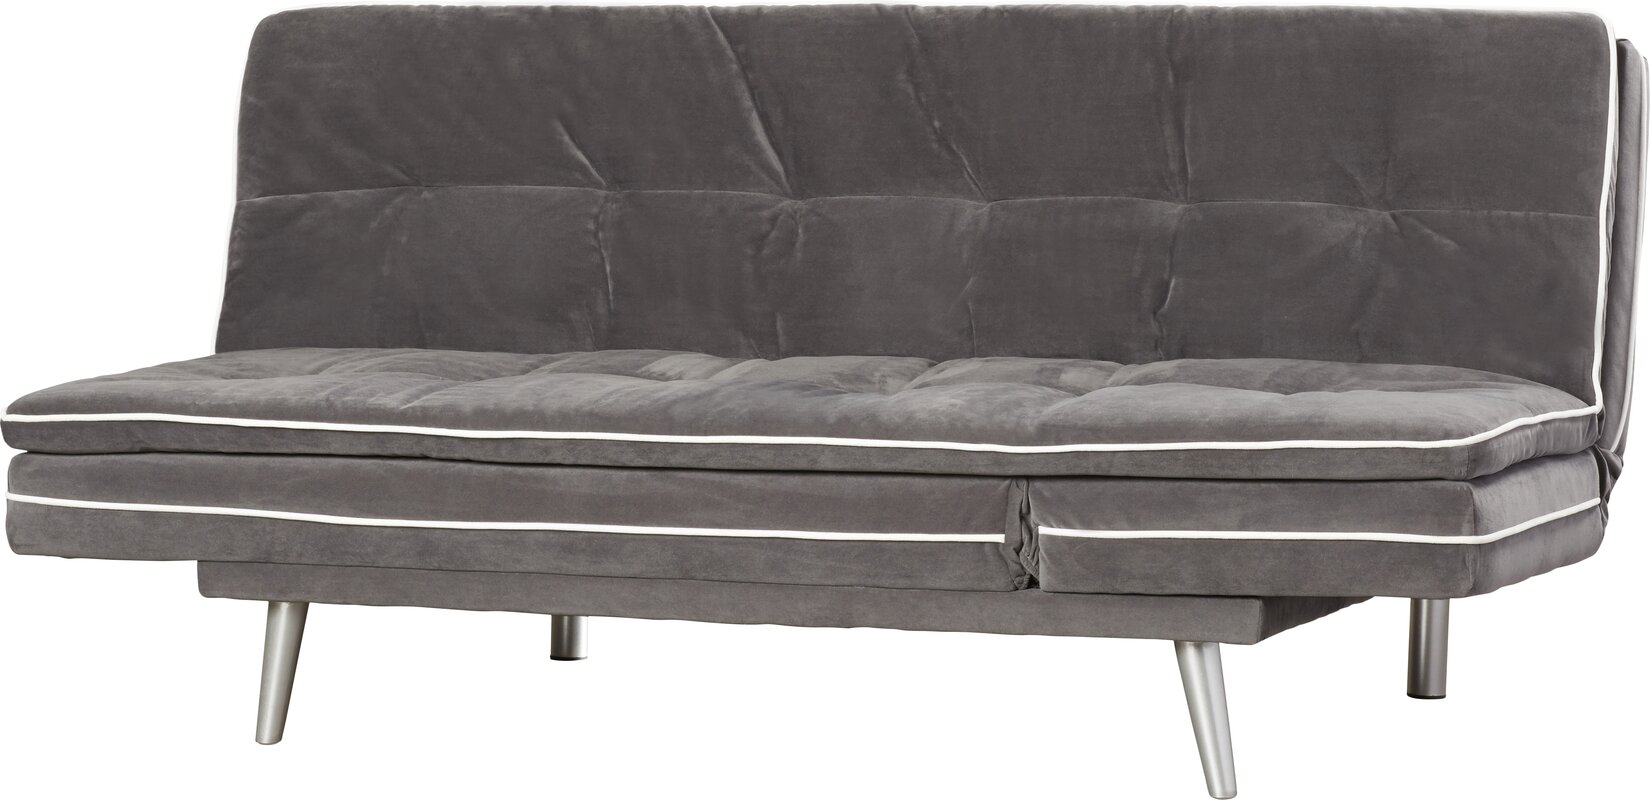 julianne 3 in 1 multi function convertible sofa latitude run julianne 3 in 1 multi function convertible sofa      rh   wayfair